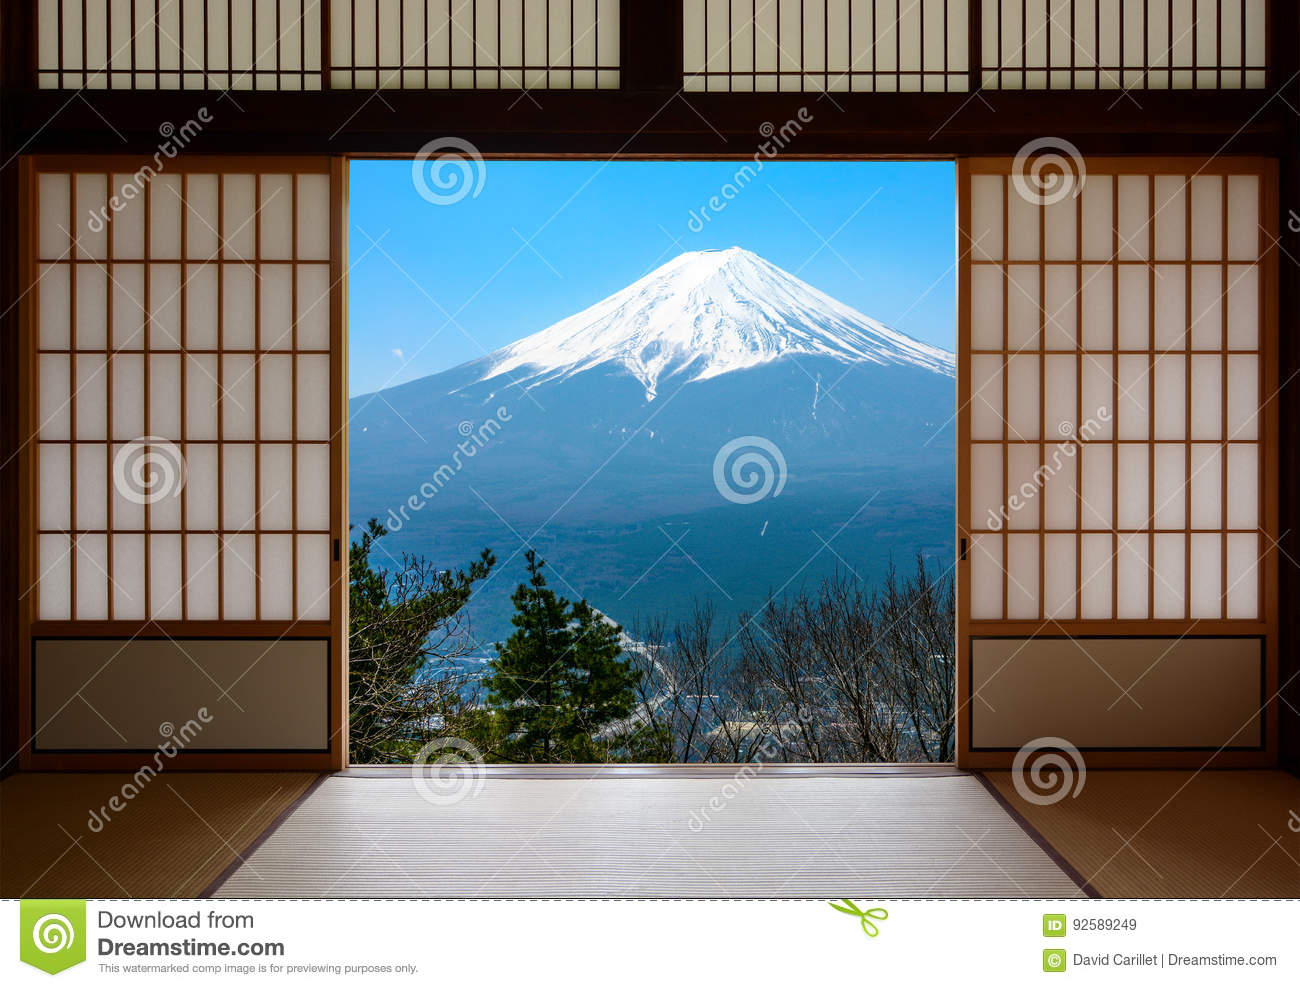 Snow capped Mount Fuji in Japan seen through traditional Japanese sliding paper doors